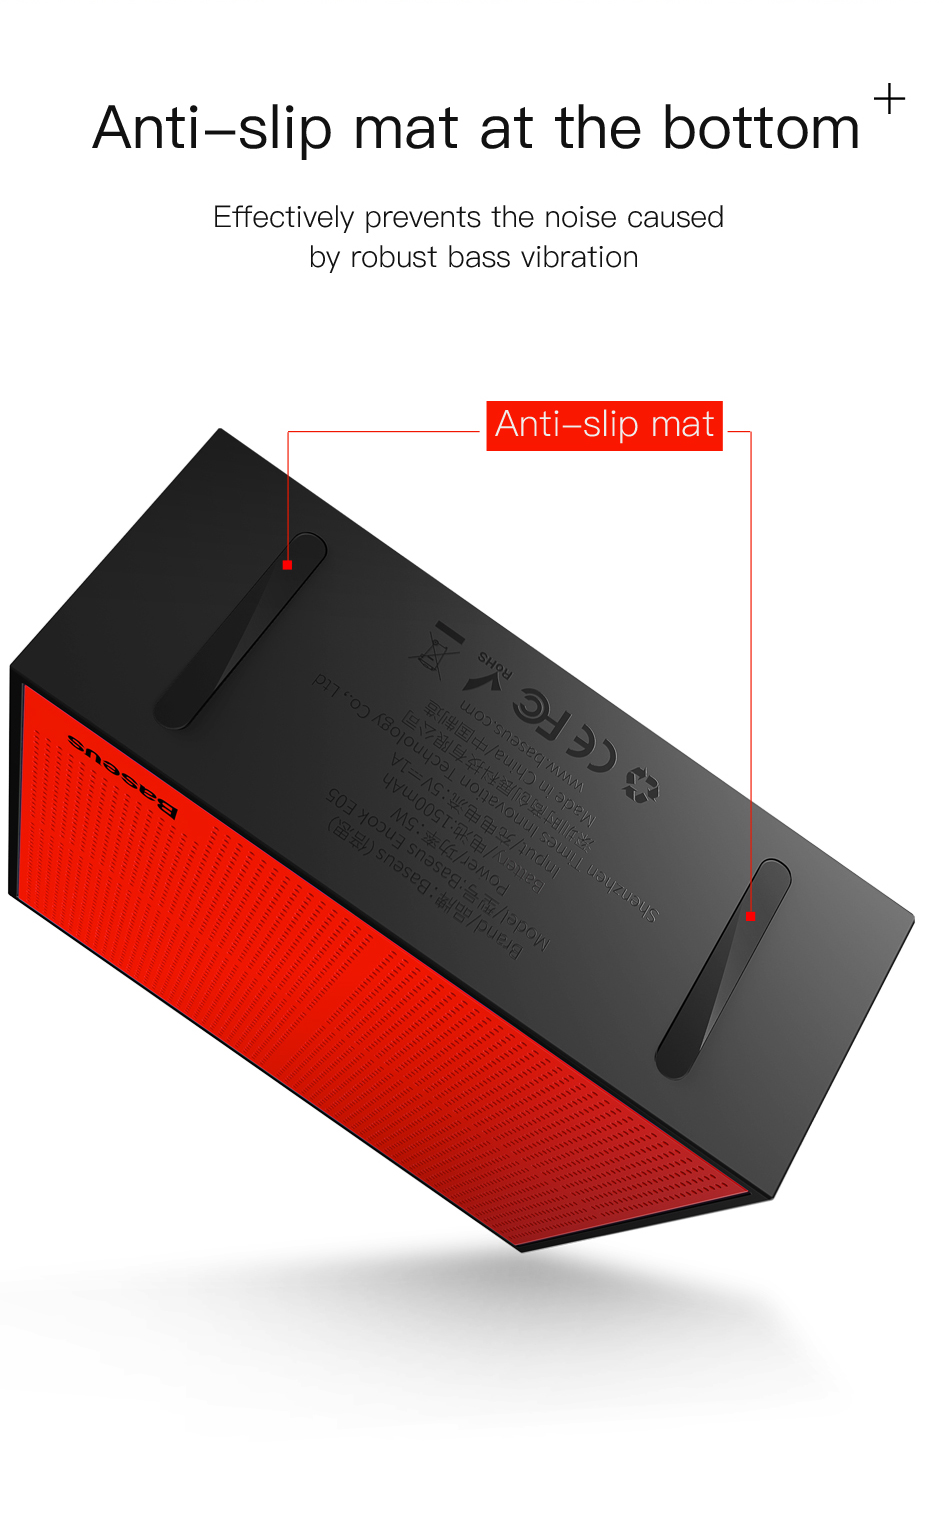 Baseus Encok E05 Cube Portable Wireless bluetooth Speaker 1500mAh IP4 Waterproof Ourdoors Subwoofer